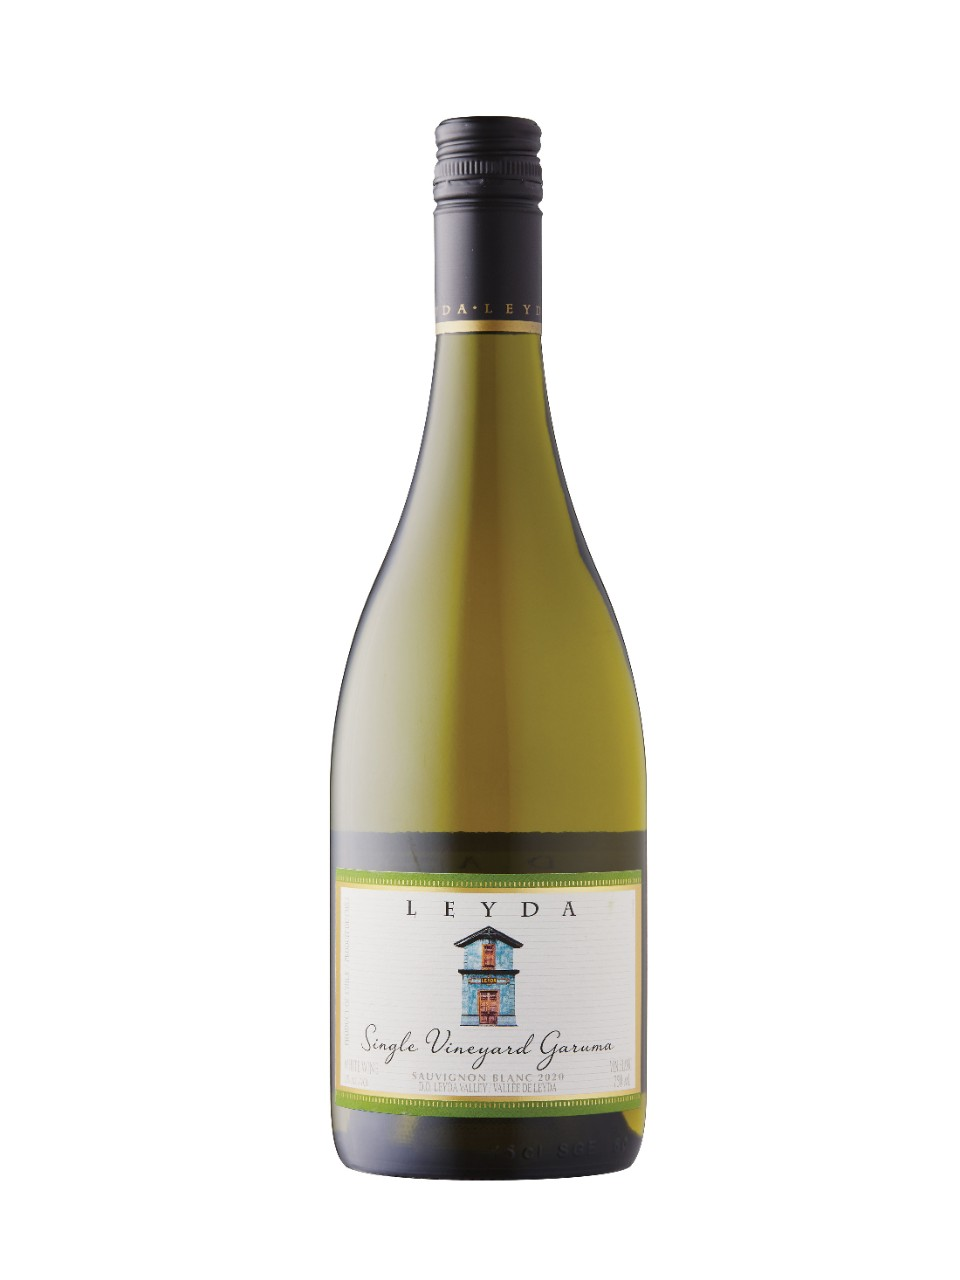 Leyda Garuma Single Vineyard Sauvignon Blanc 2018 from LCBO